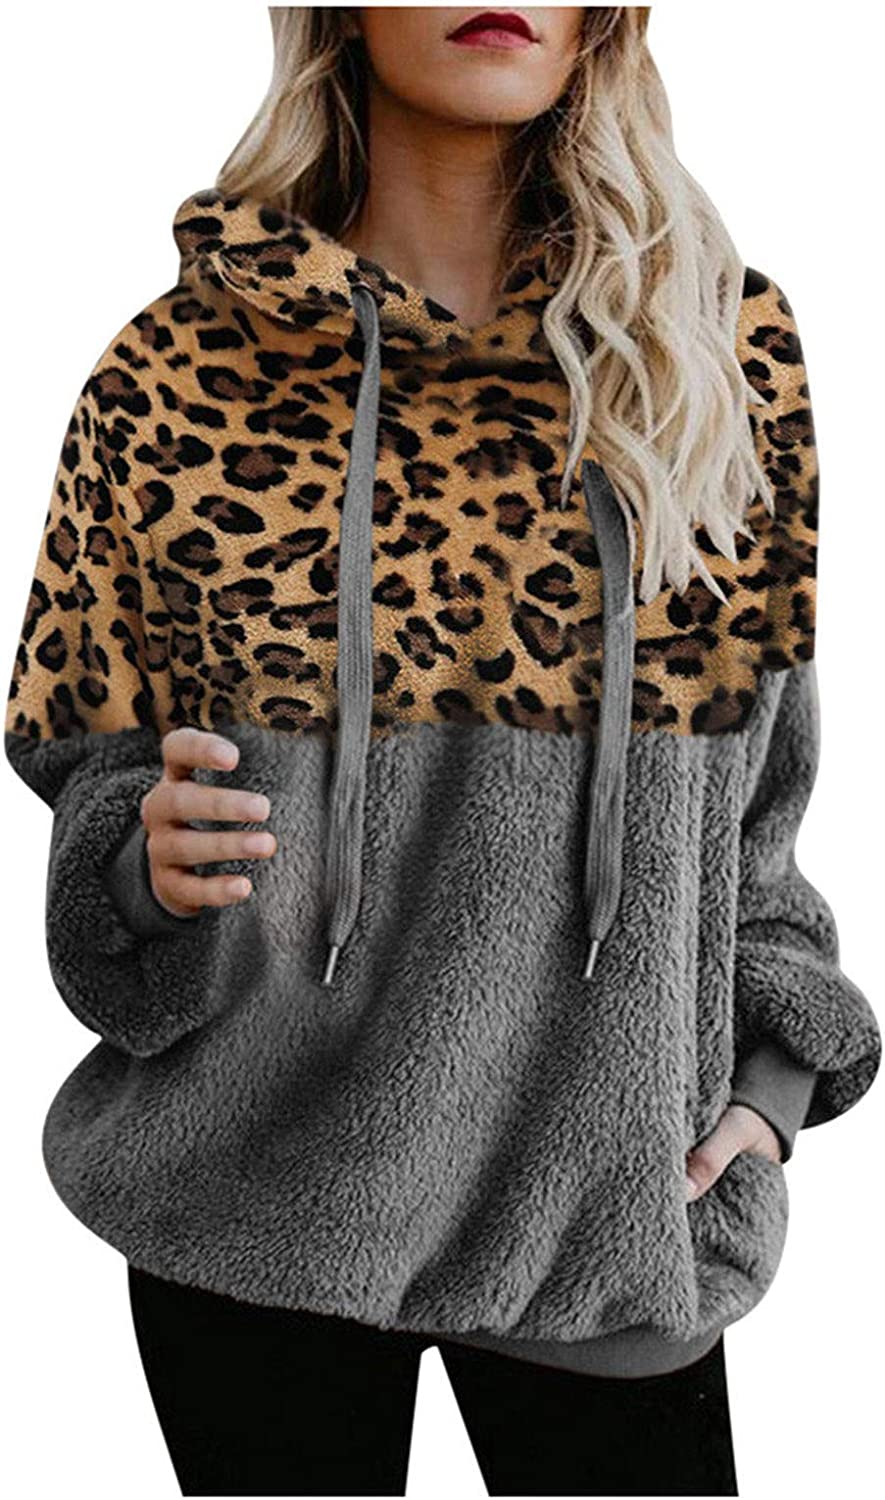 Hotkey Womens Hoodies Leopard Max 77% OFF Quantity limited Print Long Sw Sleeve Hooded Pocket